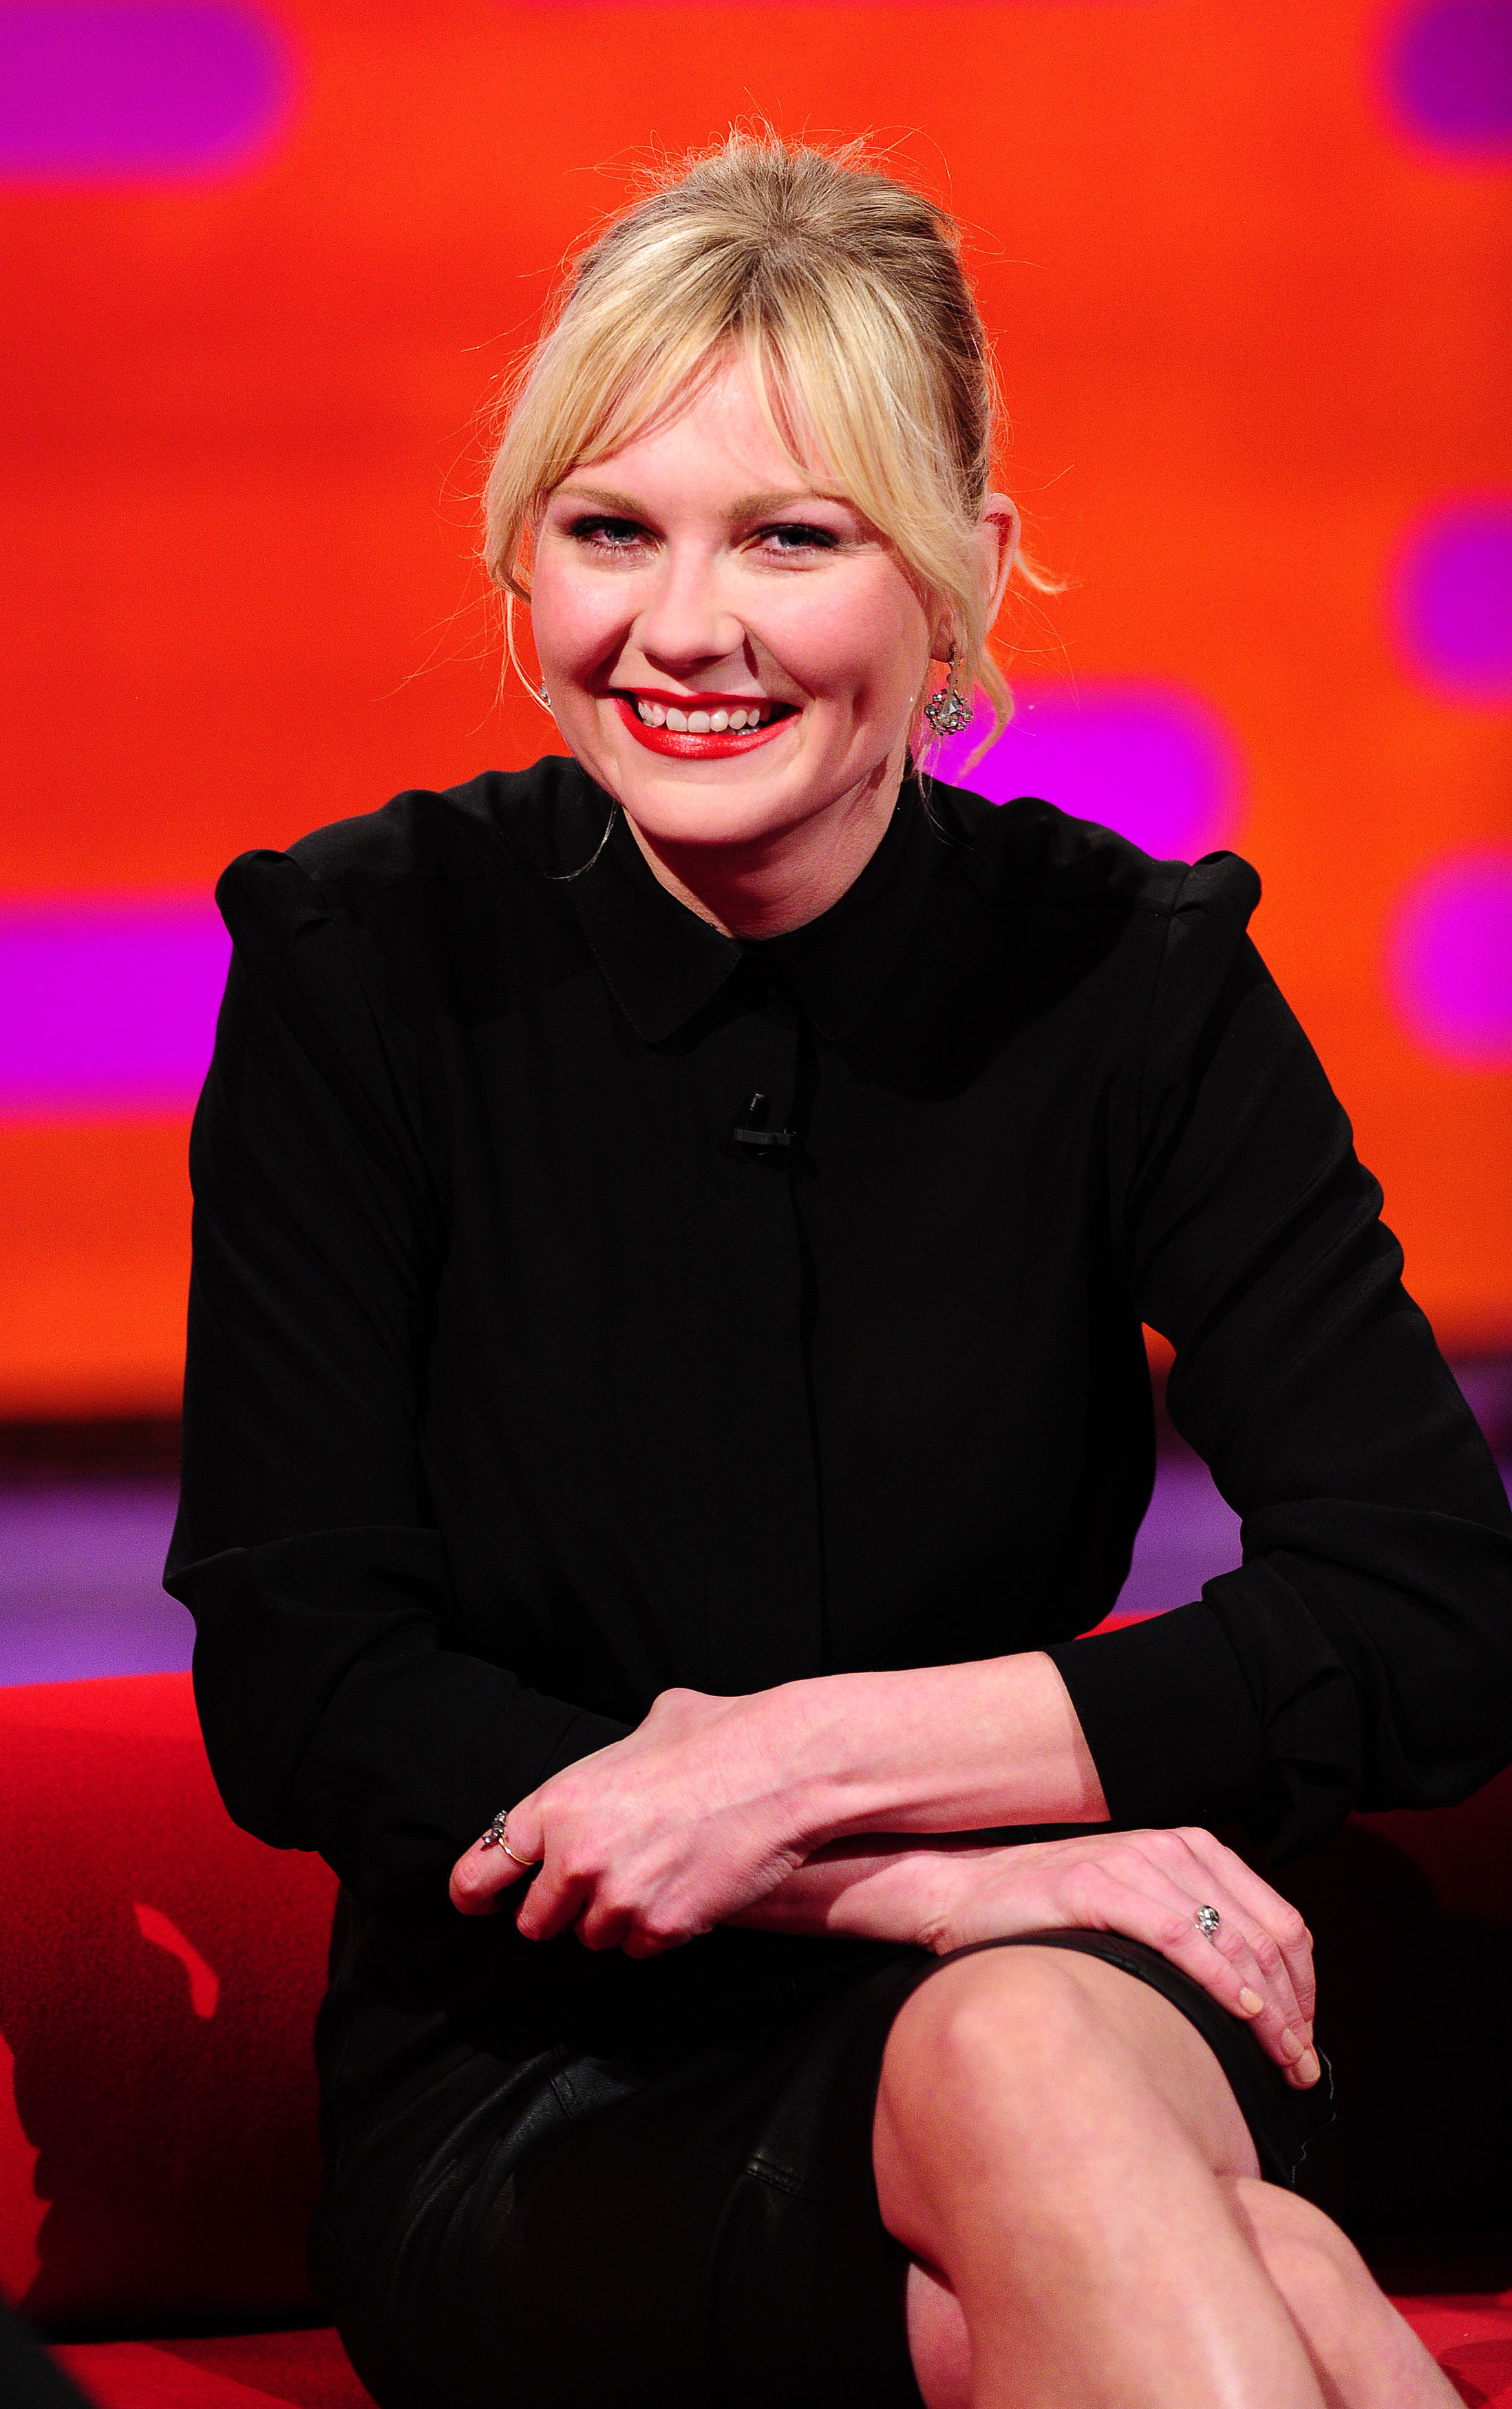 Kirsten Dunst during the filming of the Graham Norton show